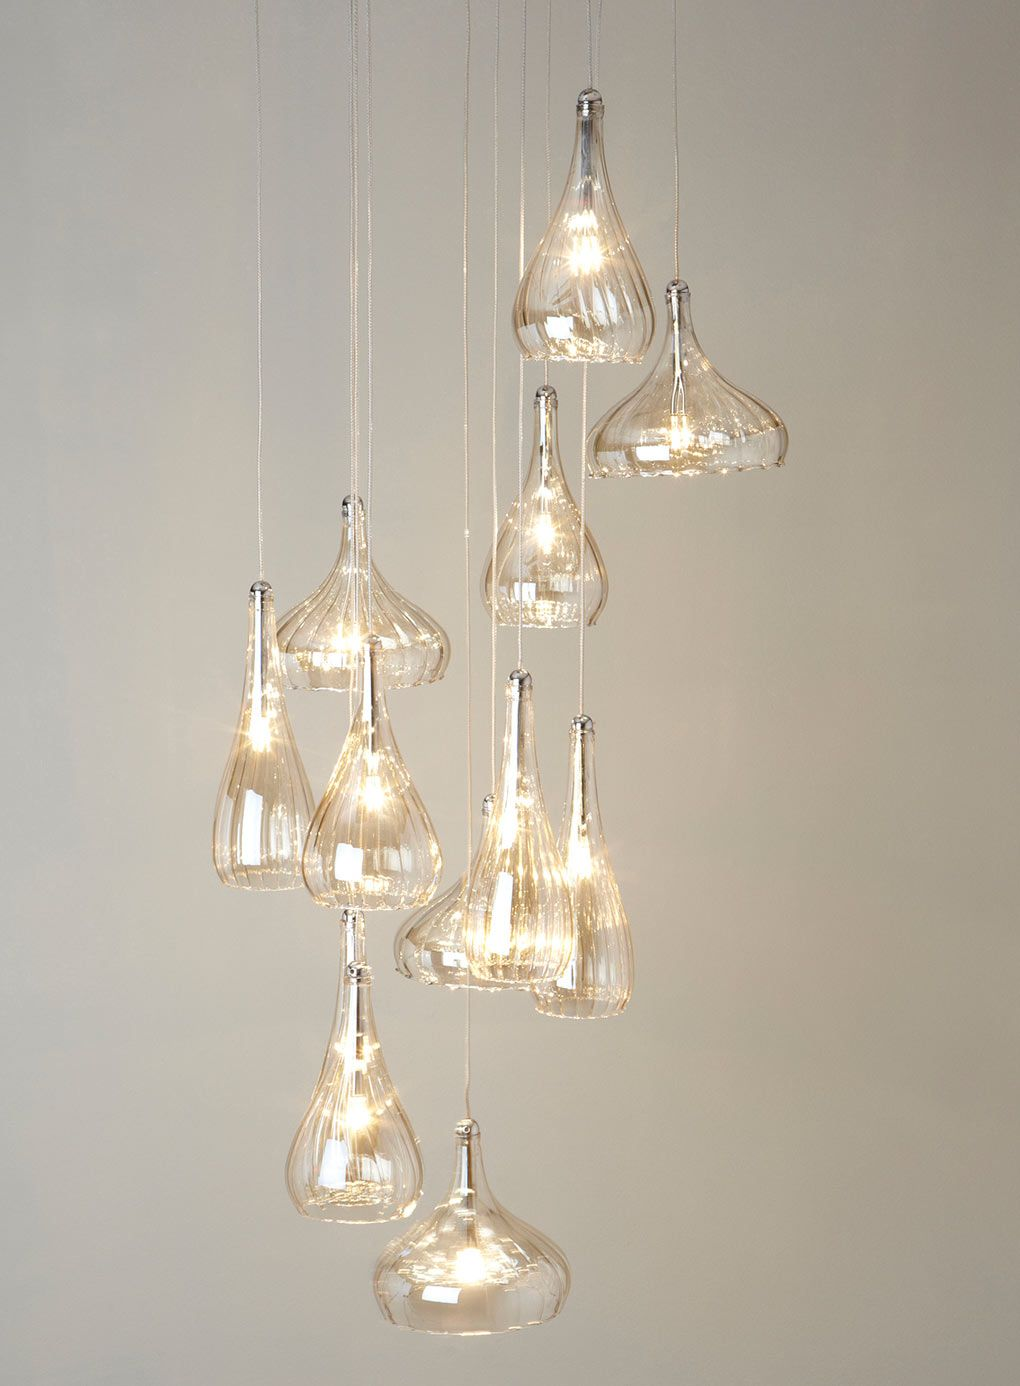 cluster pendant lighting. Carrara 12 Light Ceiling Pendant - Lights Lighting Event Home, \u0026 Cluster T